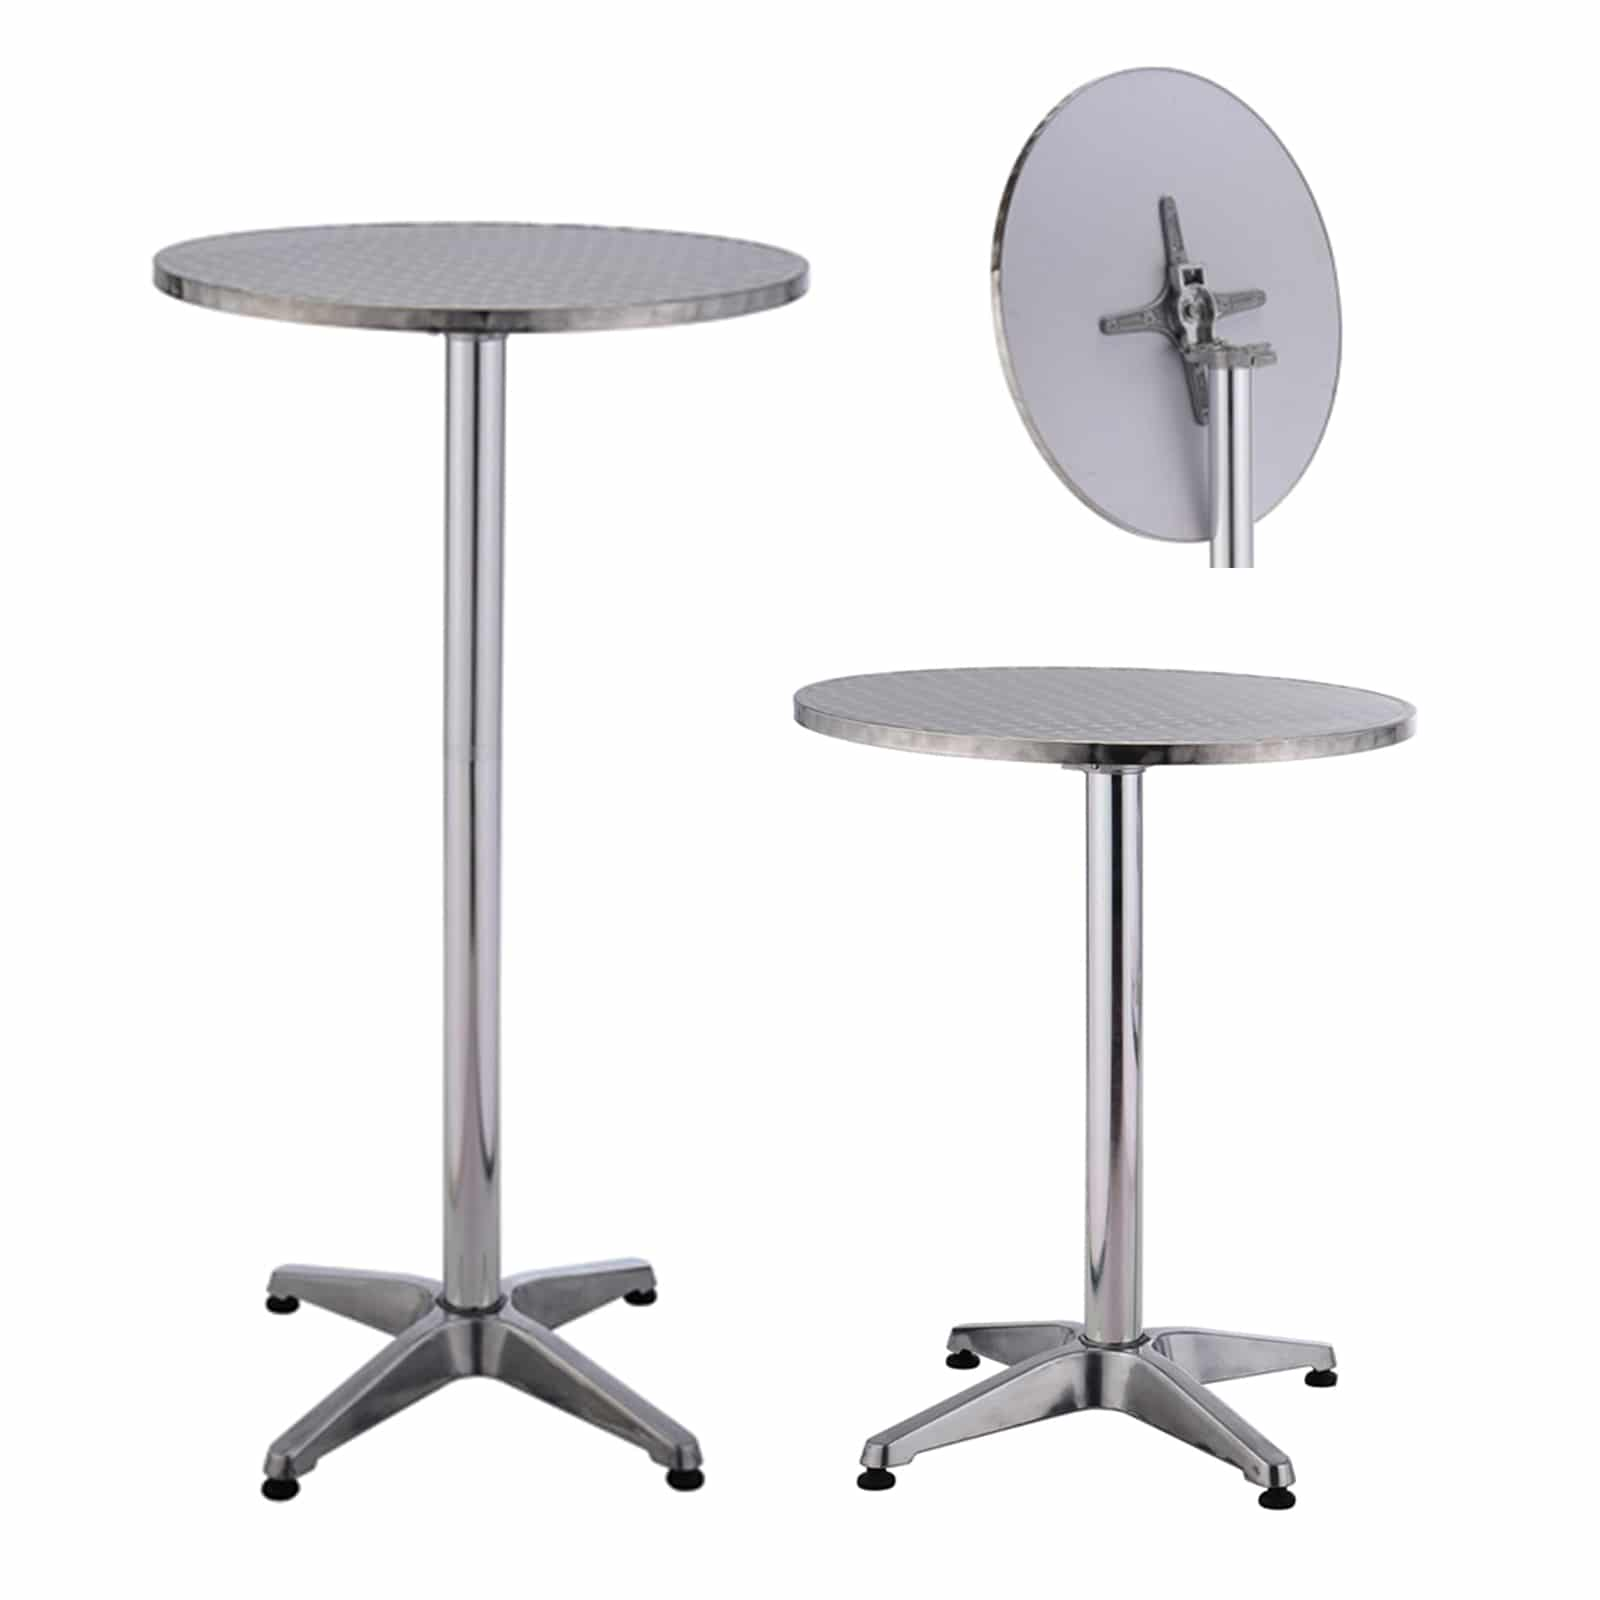 Unusual Cocktail Tables Aluminium Bar Table Folding Top With Base Weight